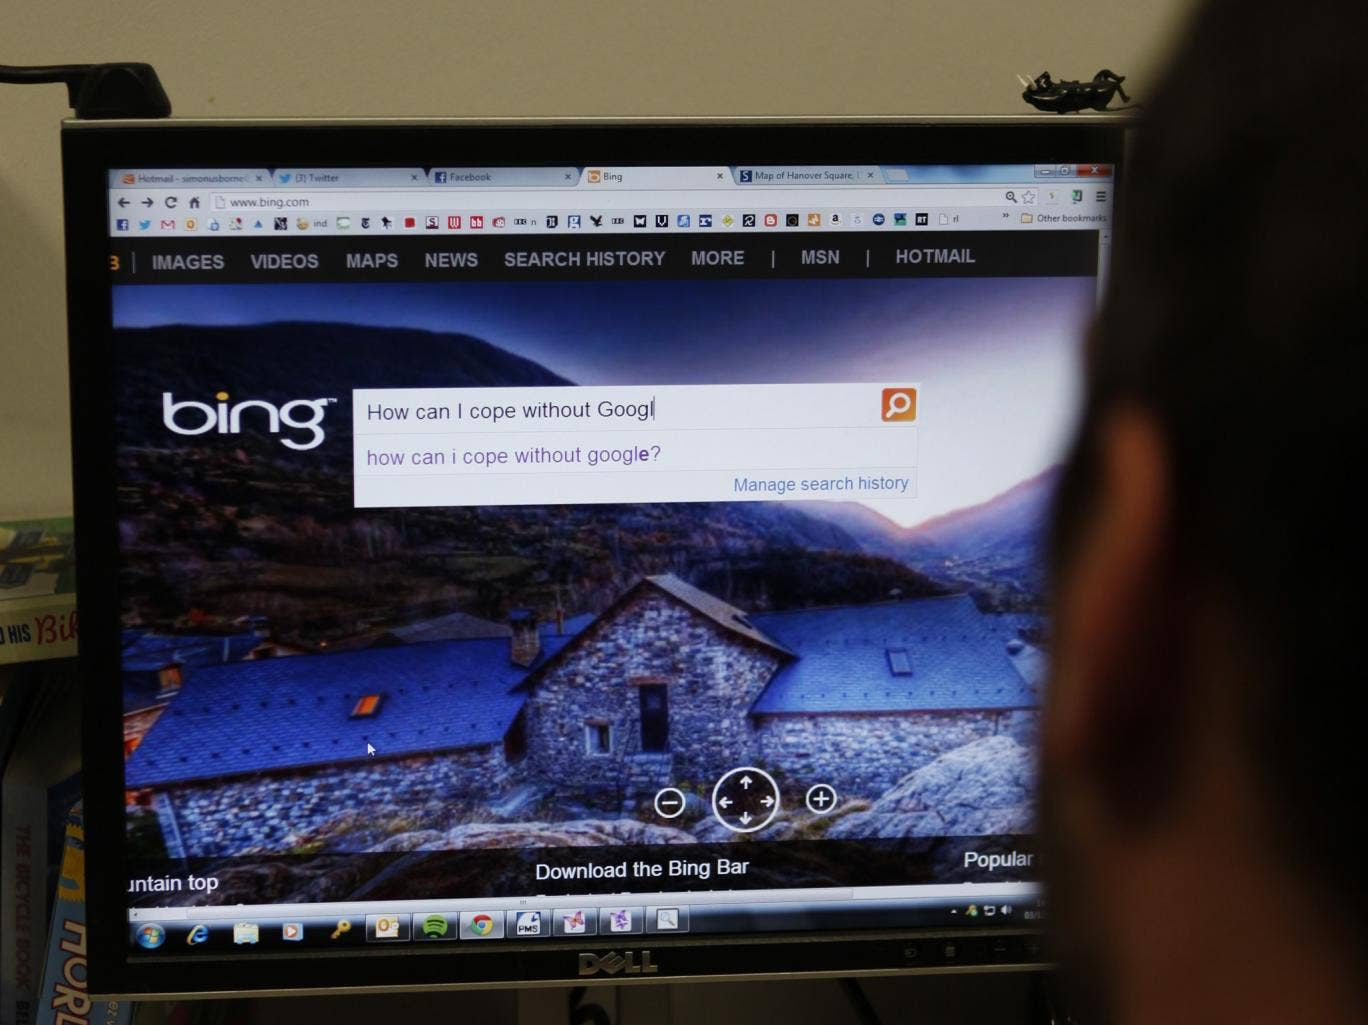 Bing for a day: my fruitless attempt to avoid using a Google product